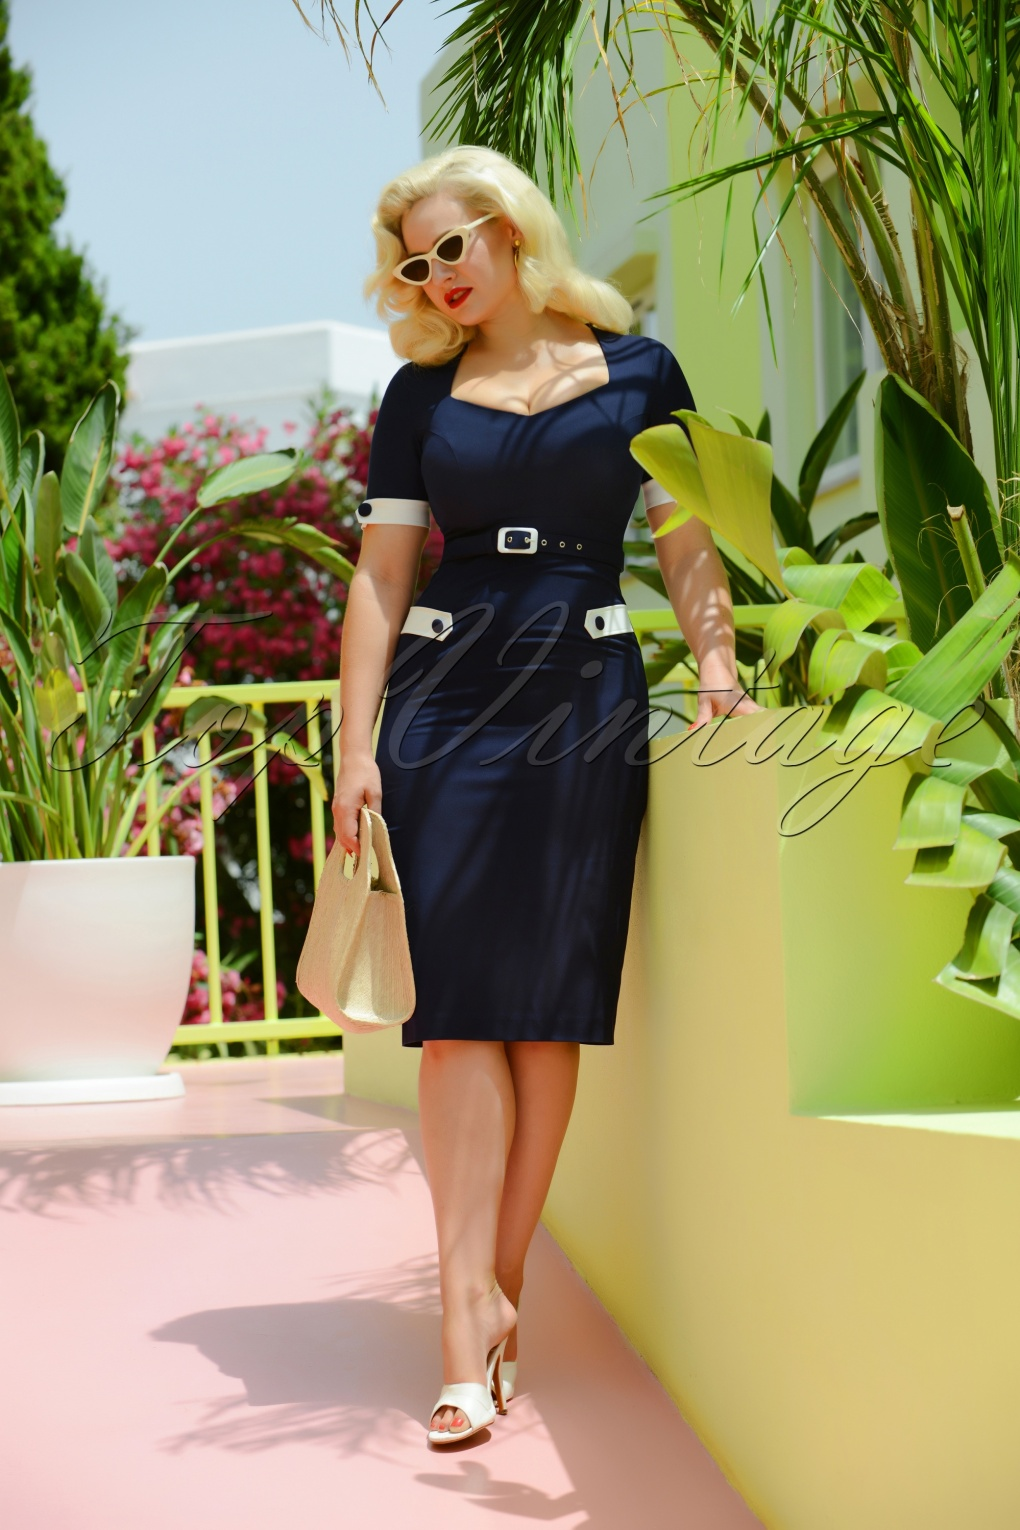 Vintage Sailor Clothes, Nautical Theme Clothing 50s Doris Pencil Dress in Navy £102.61 AT vintagedancer.com